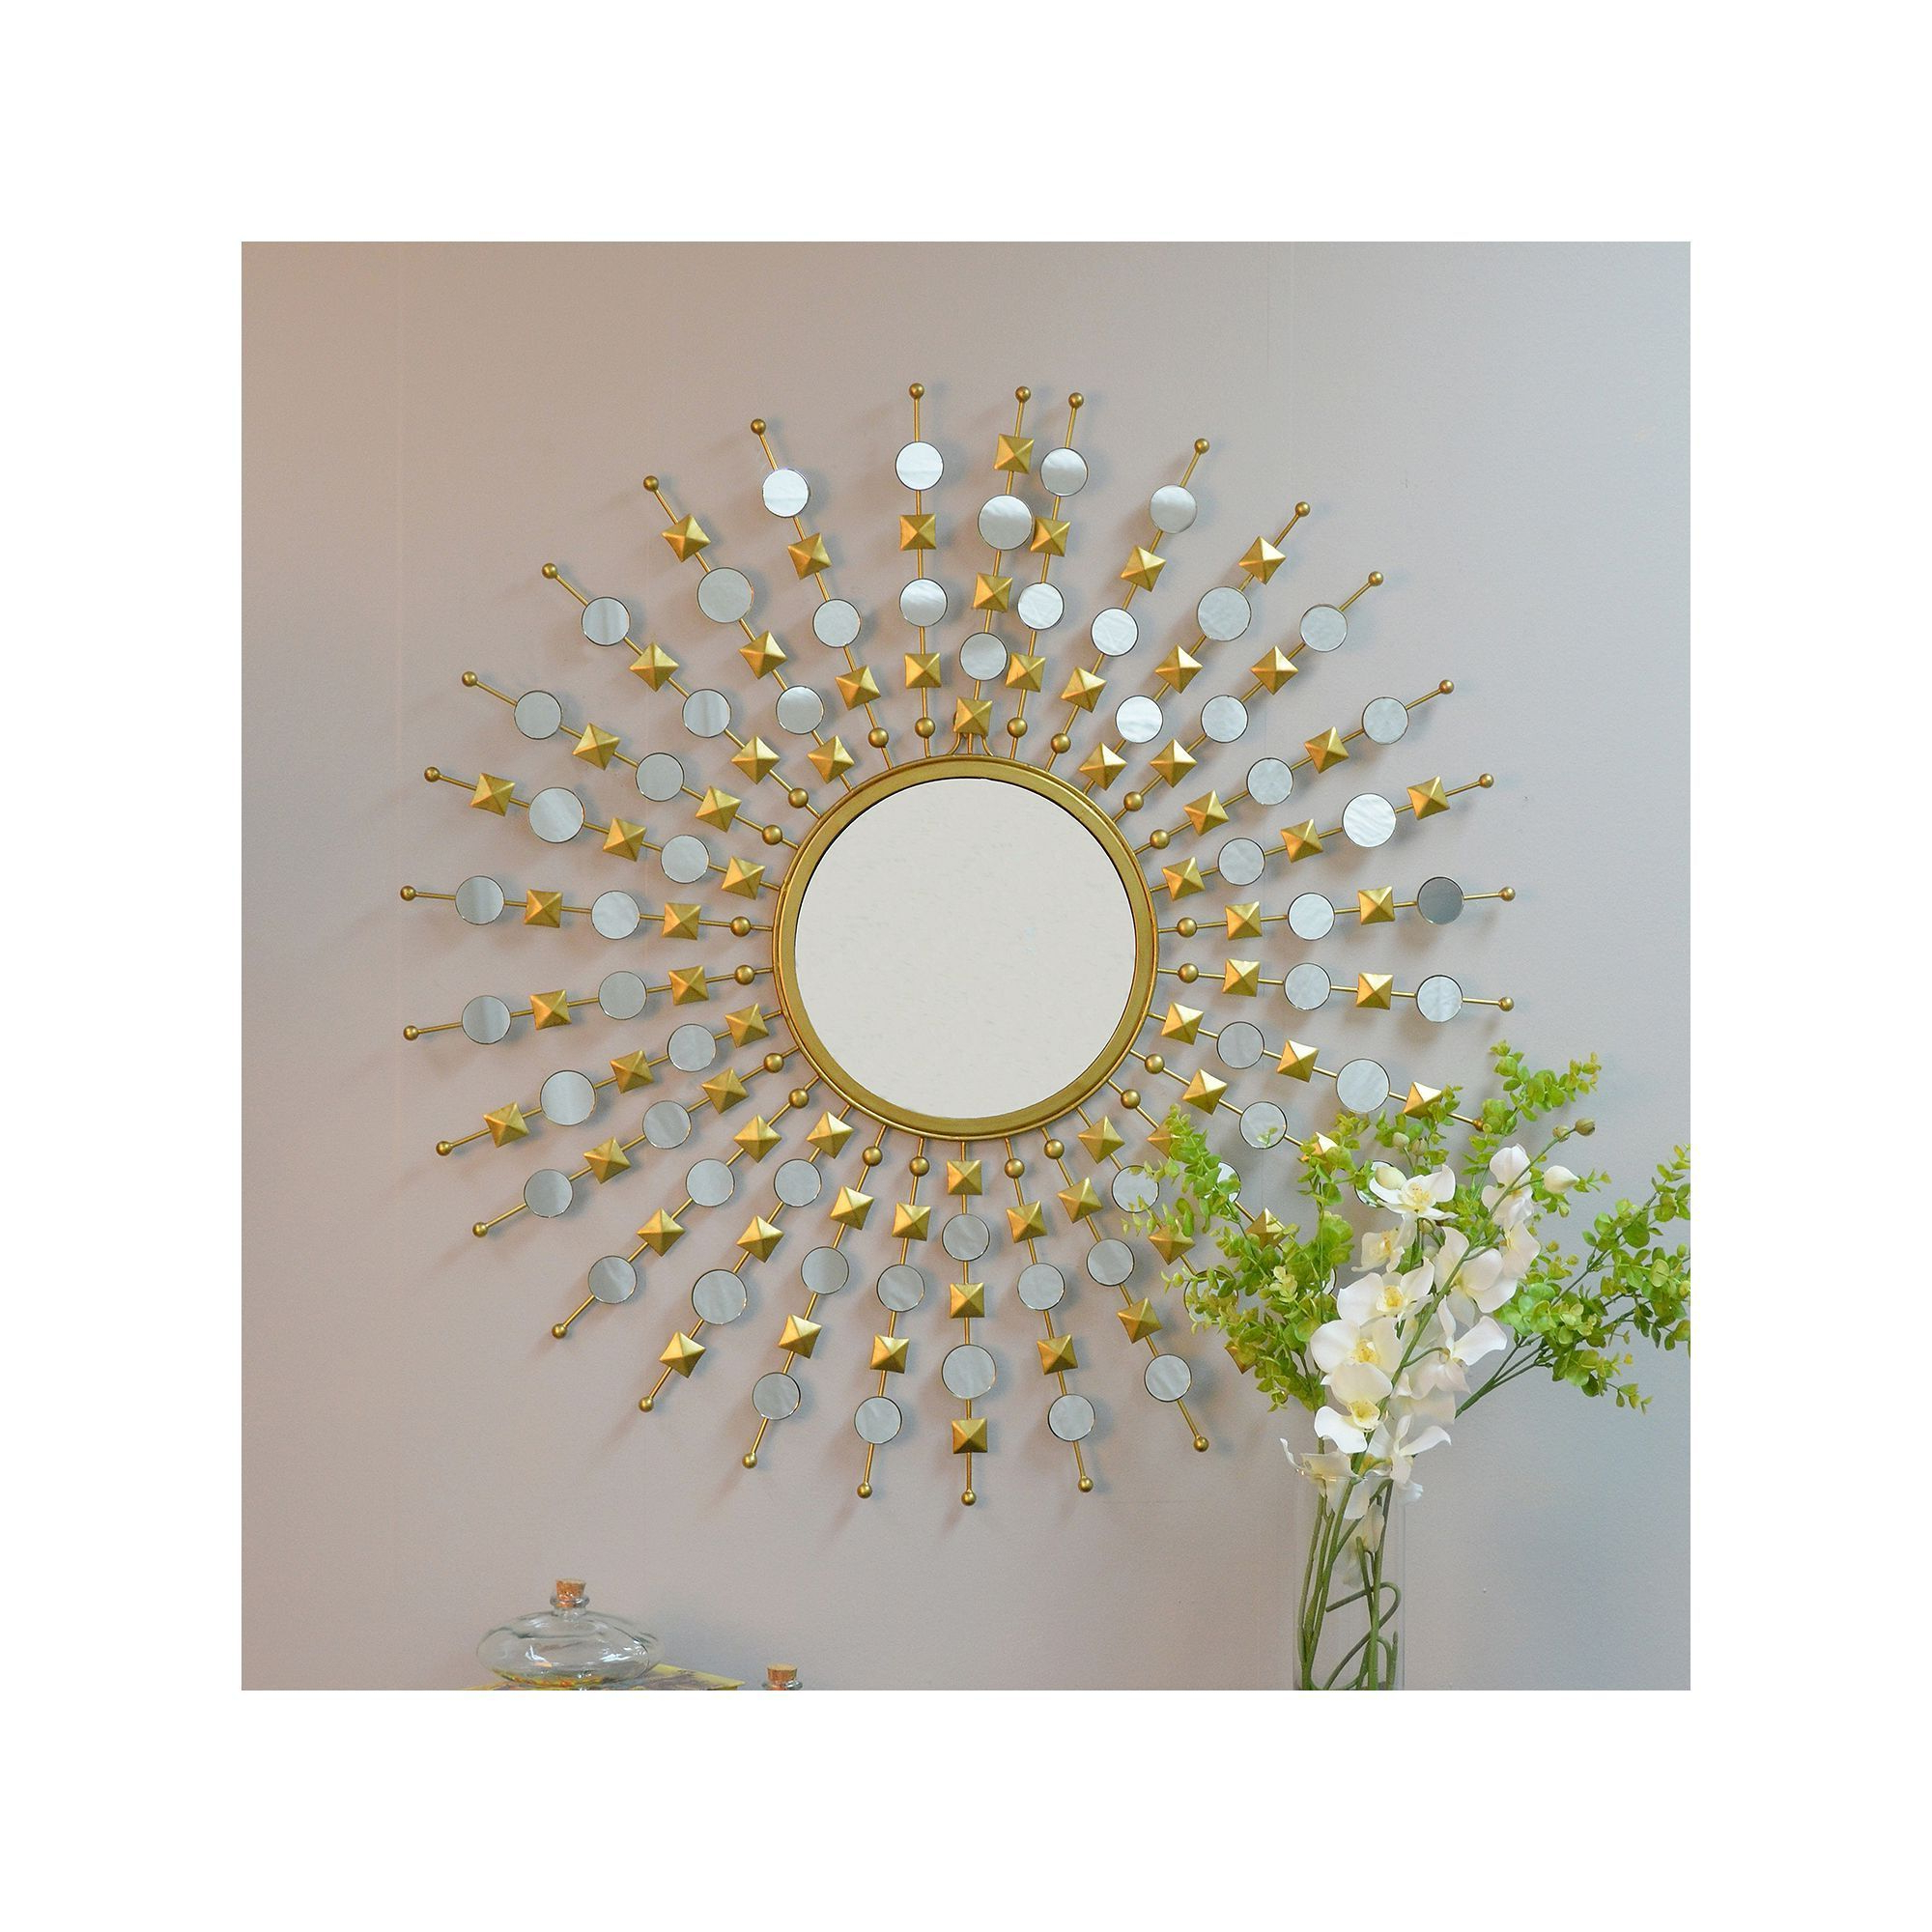 Starburst Wall Decor By Willa Arlo Interiors Throughout Favorite Carolina Forge Payton Round Wall Mirror, Gold In  (View 11 of 20)